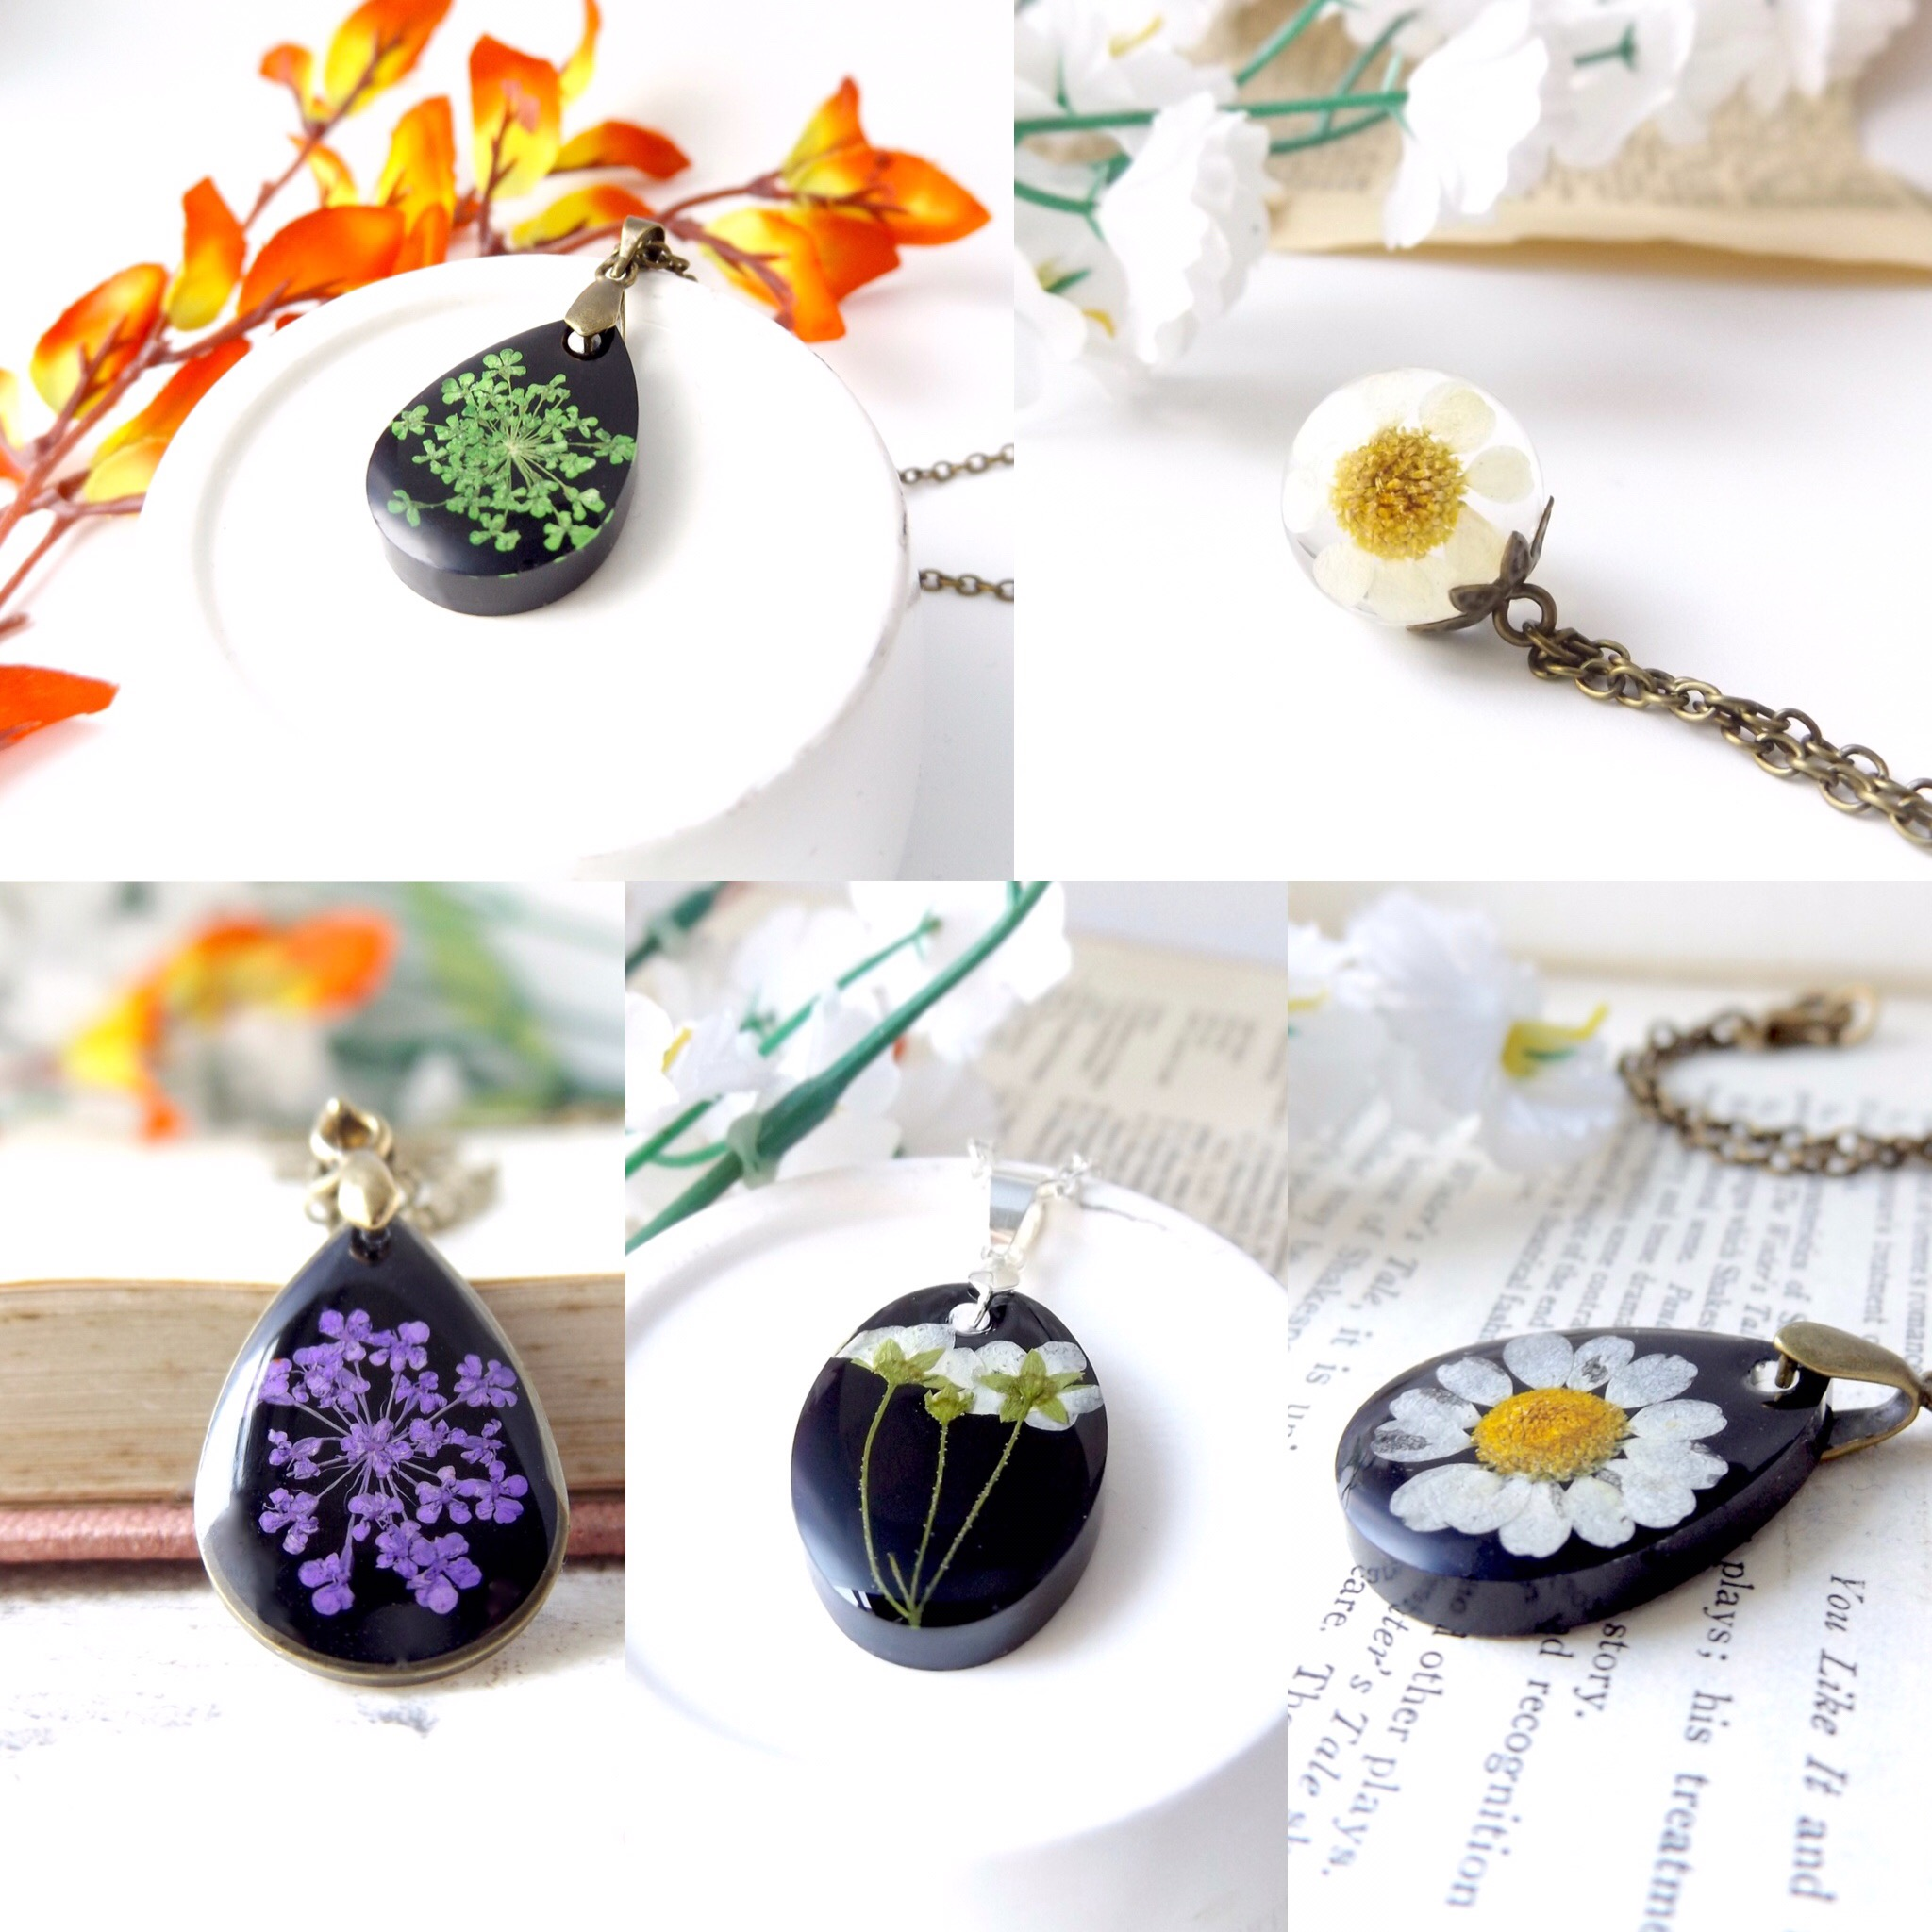 New real flower resin jewellery – perfect for summer outfits!